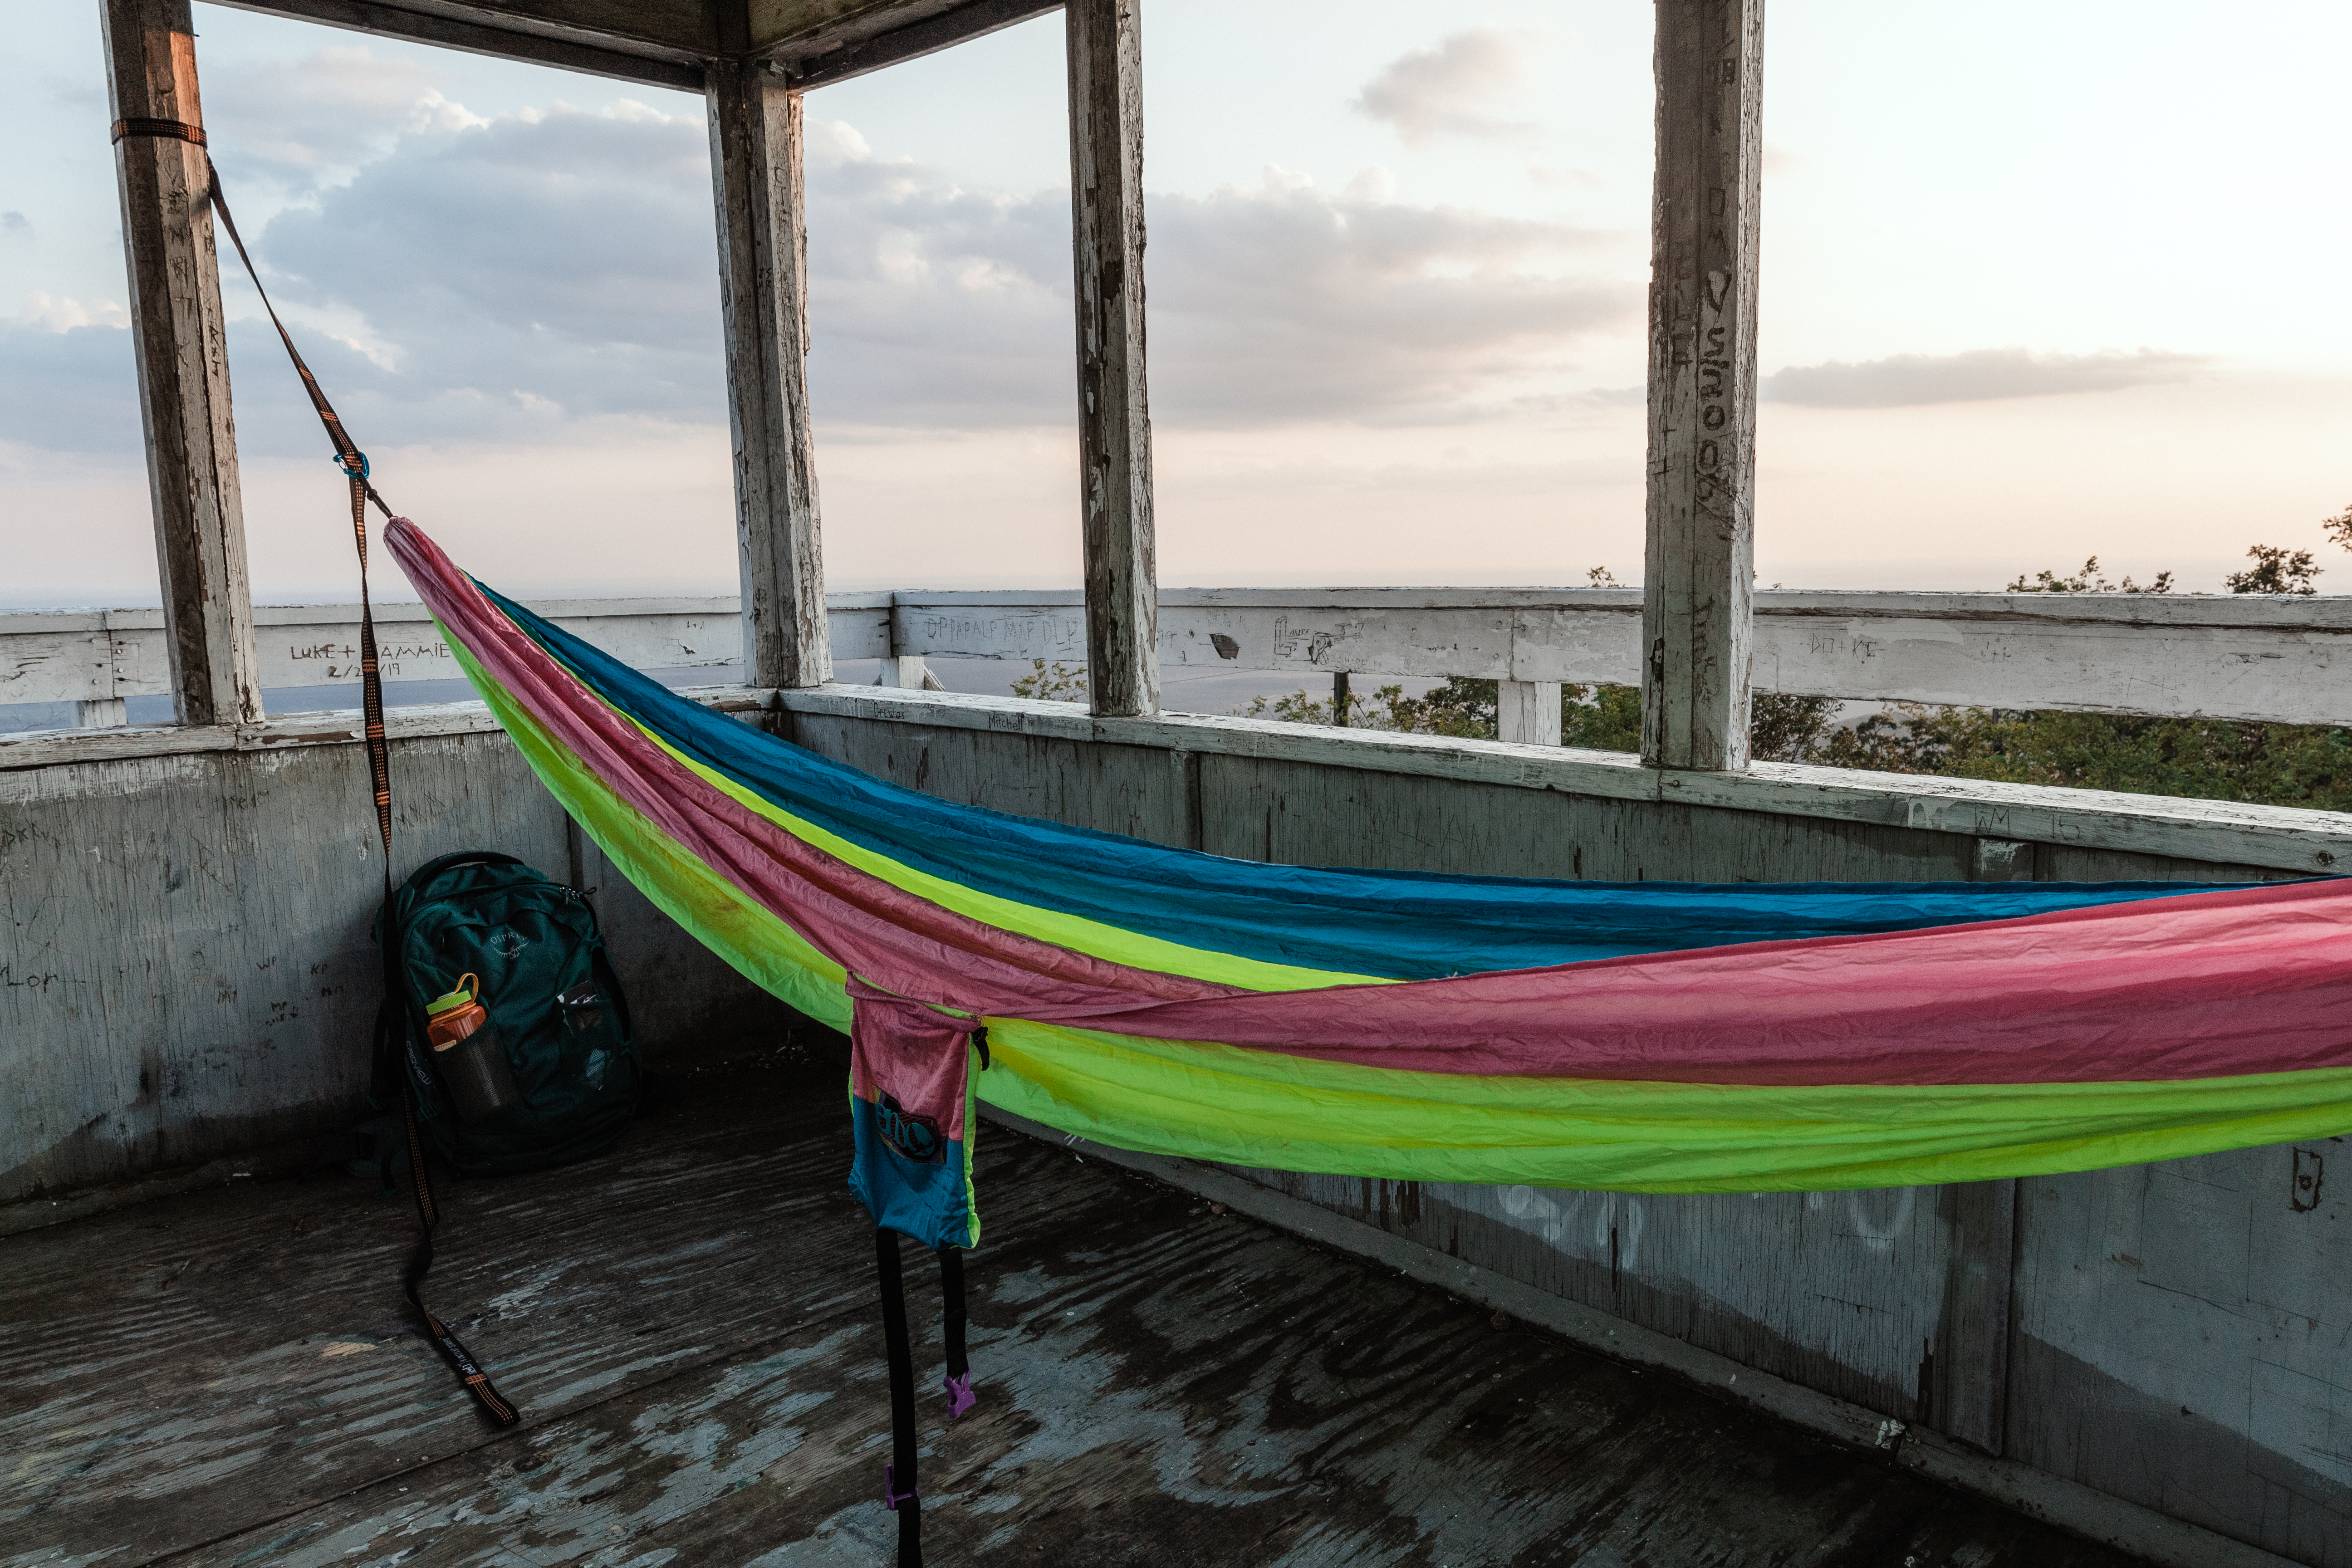 Hammock camp set up for the night in Tall Peak Tower